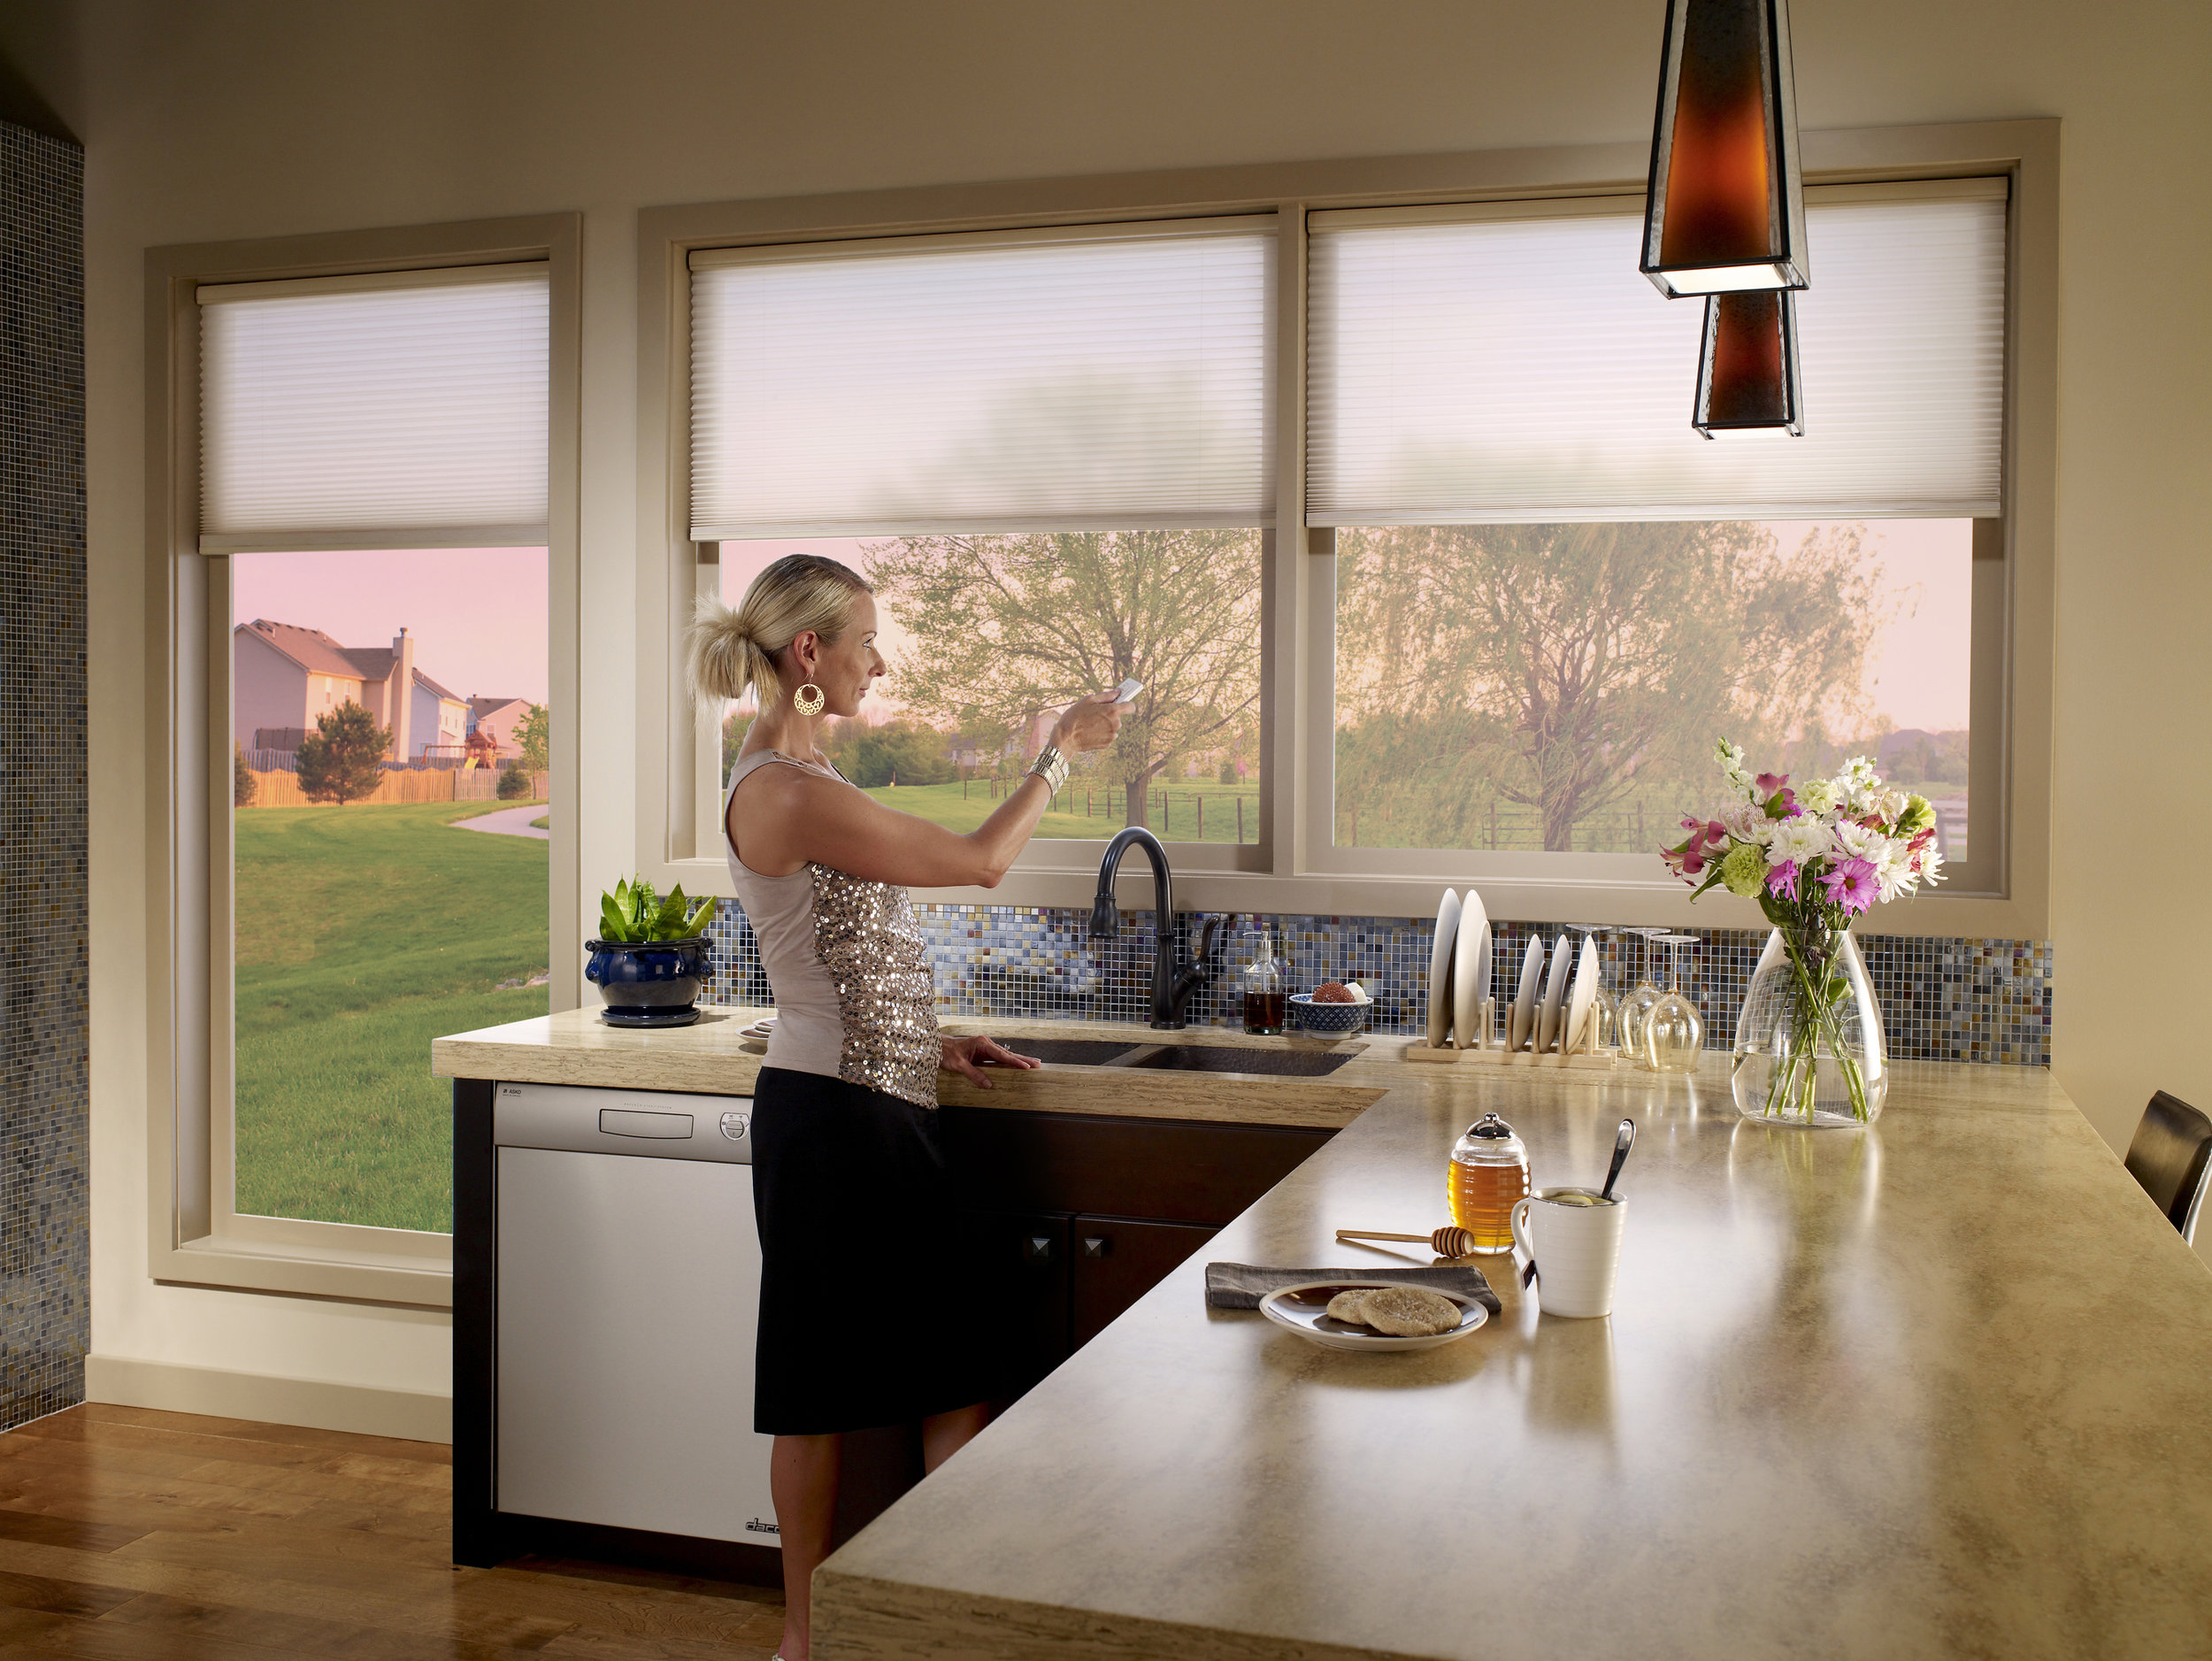 Motorized Shades    Motorized shades add comfort and convenience. Imagine having your shades automatically come down when the evening sun starts to heat up your room. Motorized shades also add privacy and security to your smart home.